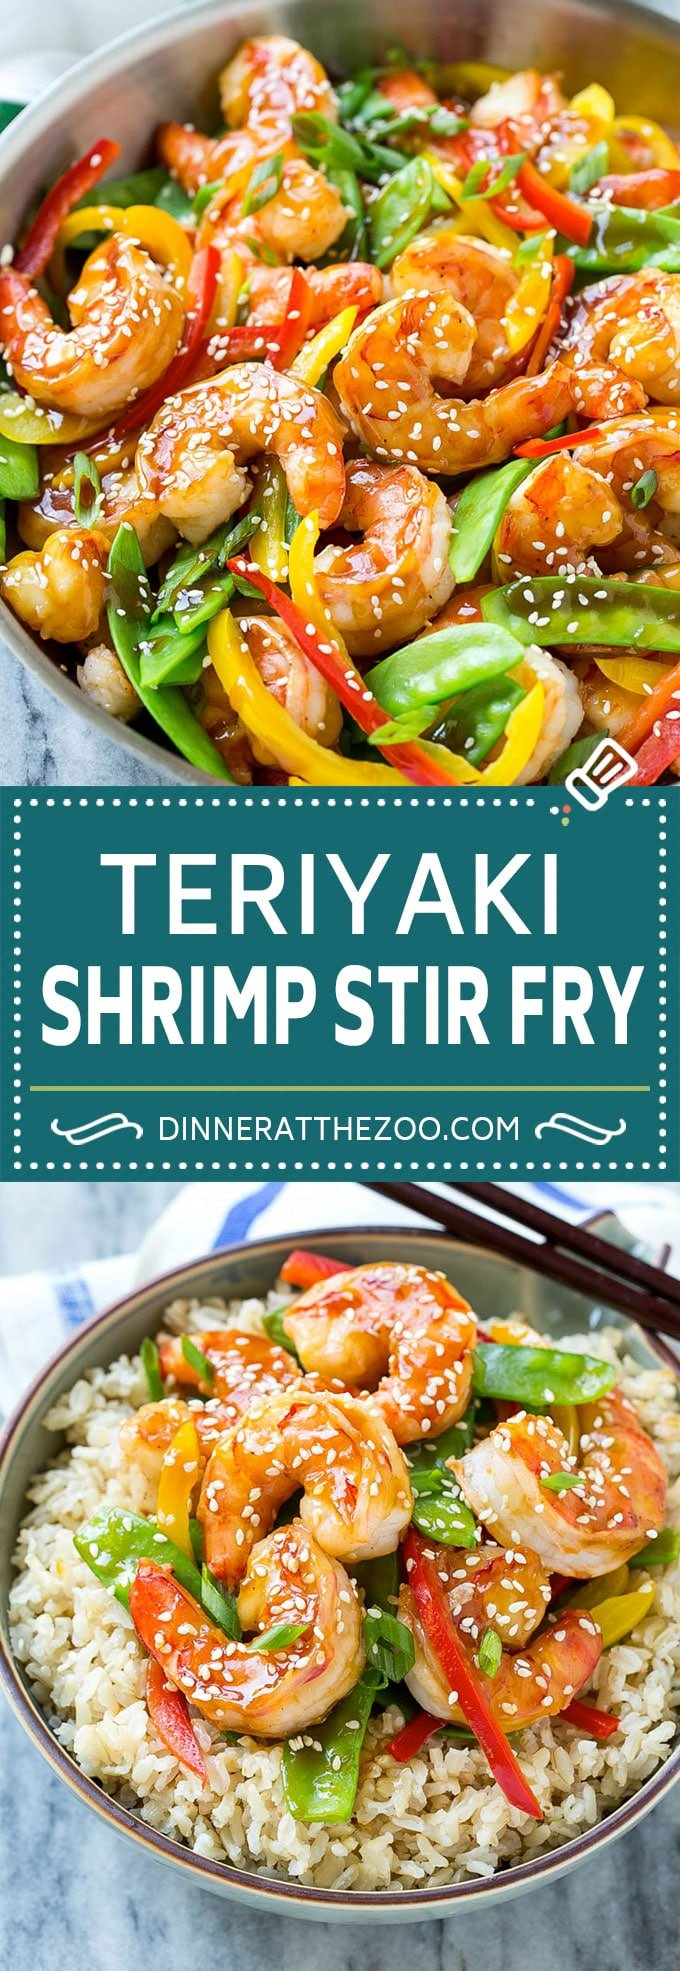 Teriyaki Shrimp Stir Fry | Shrimp Recipe | Stir Fry Recipe #shrimp #teriyaki #vegetables #stirfry #dinner #dinneratthezoo